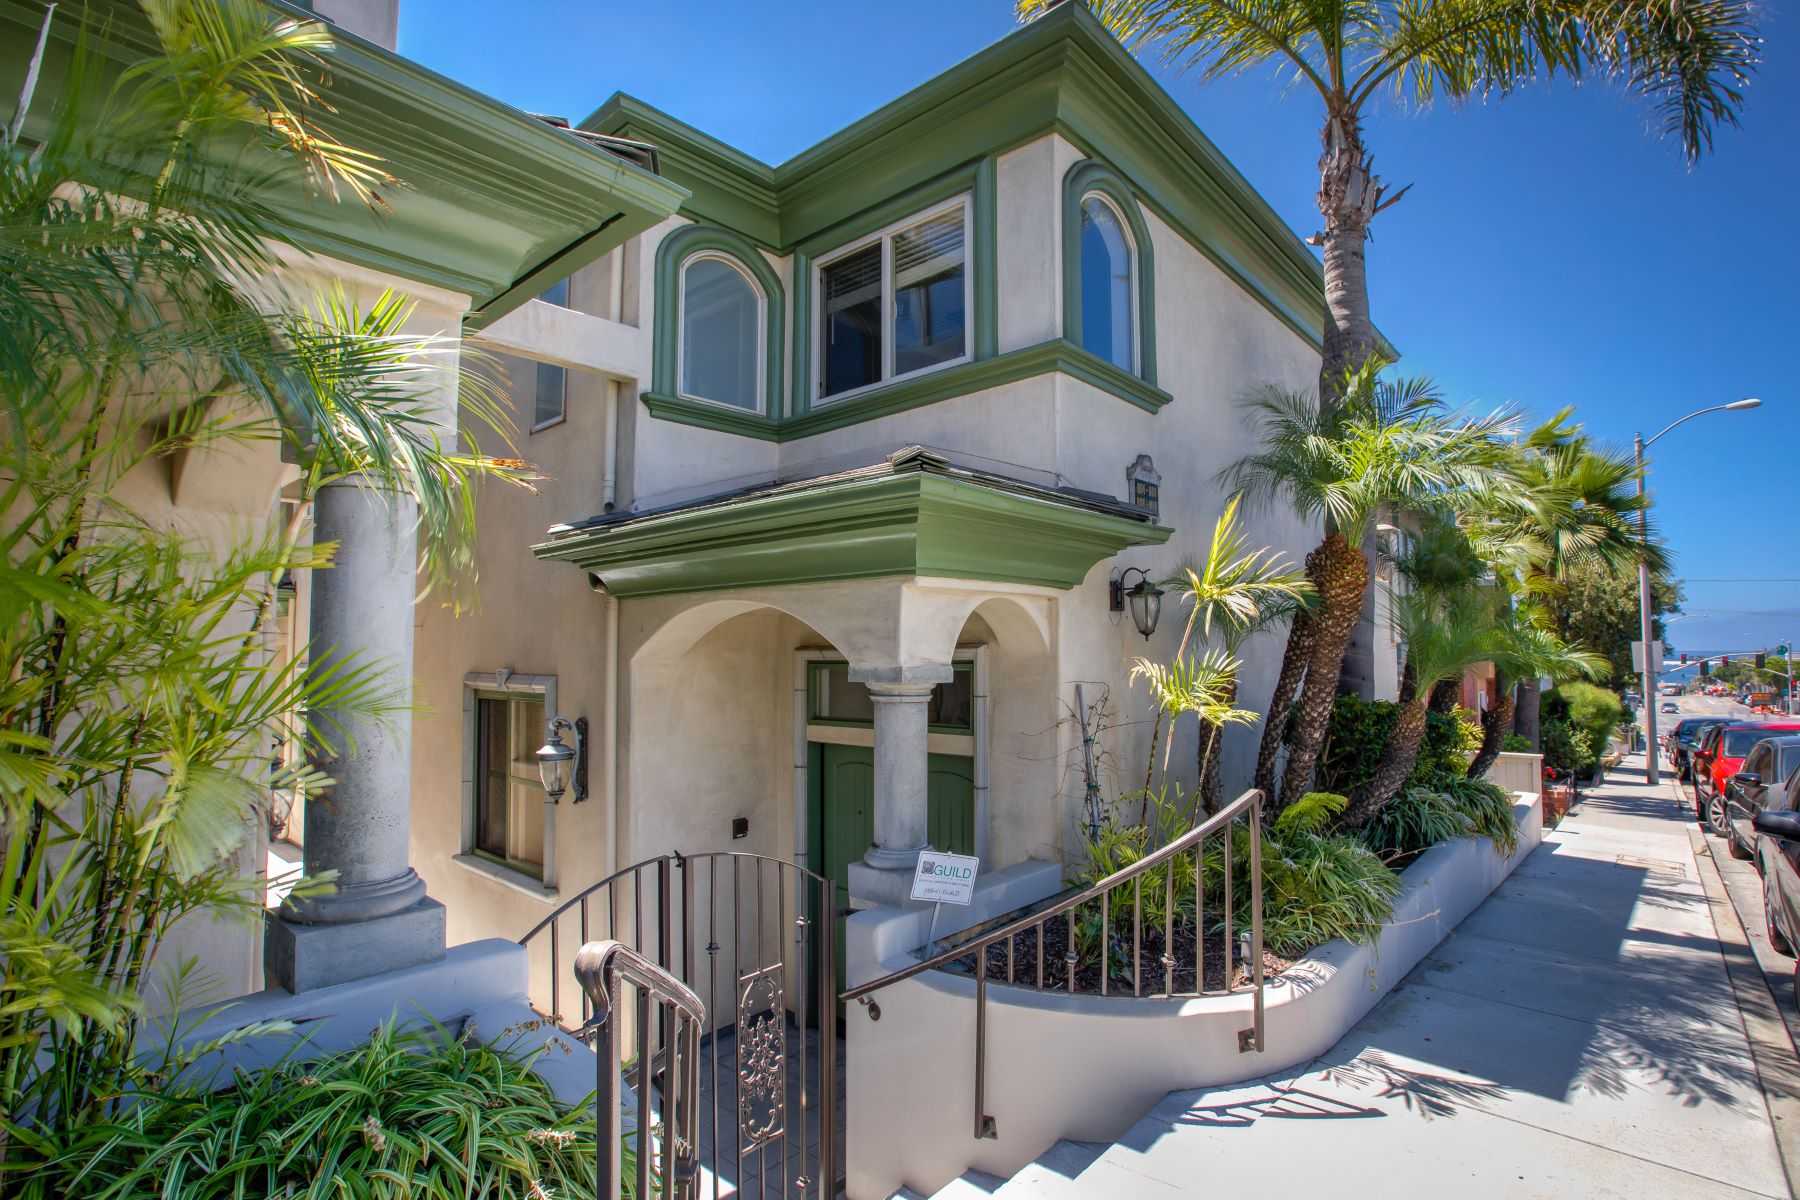 townhouses for Active at 612 Manhattan Beach Boulevard, Manhattan Beach, CA 90266 612 Manhattan Beach Boulevard Manhattan Beach, California 90266 United States